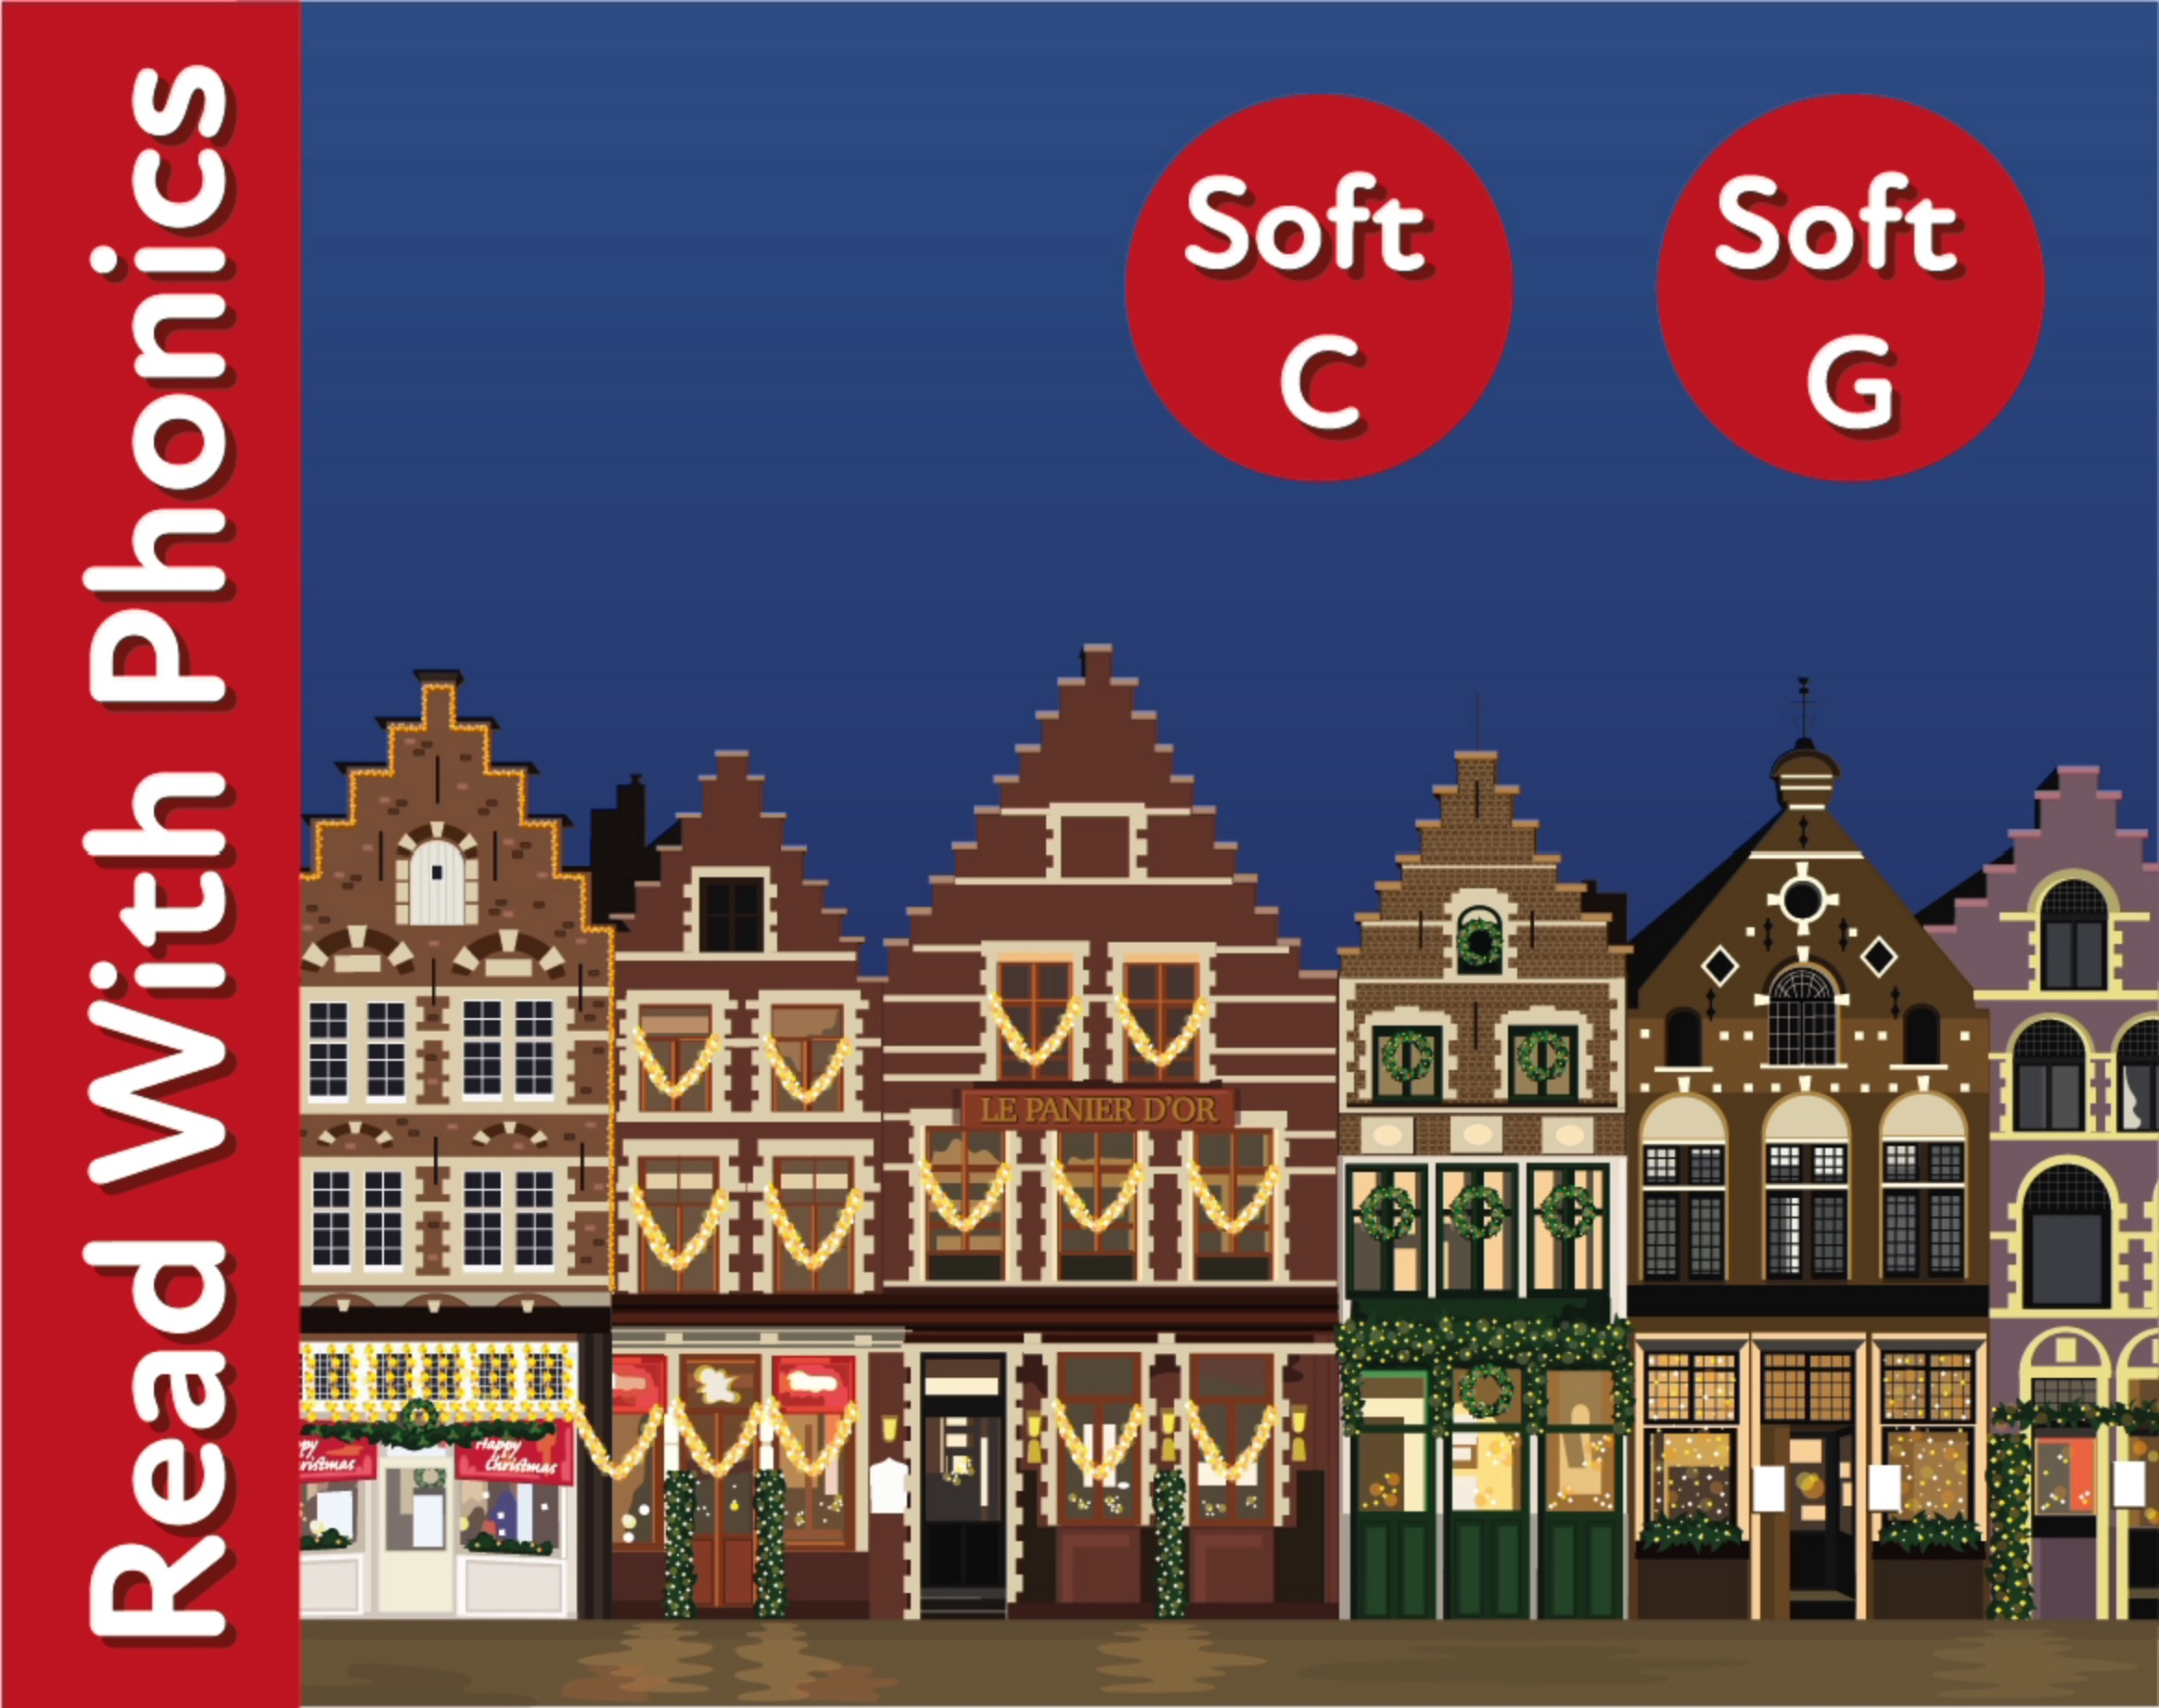 Where Is France? Revise Soft C and Soft G